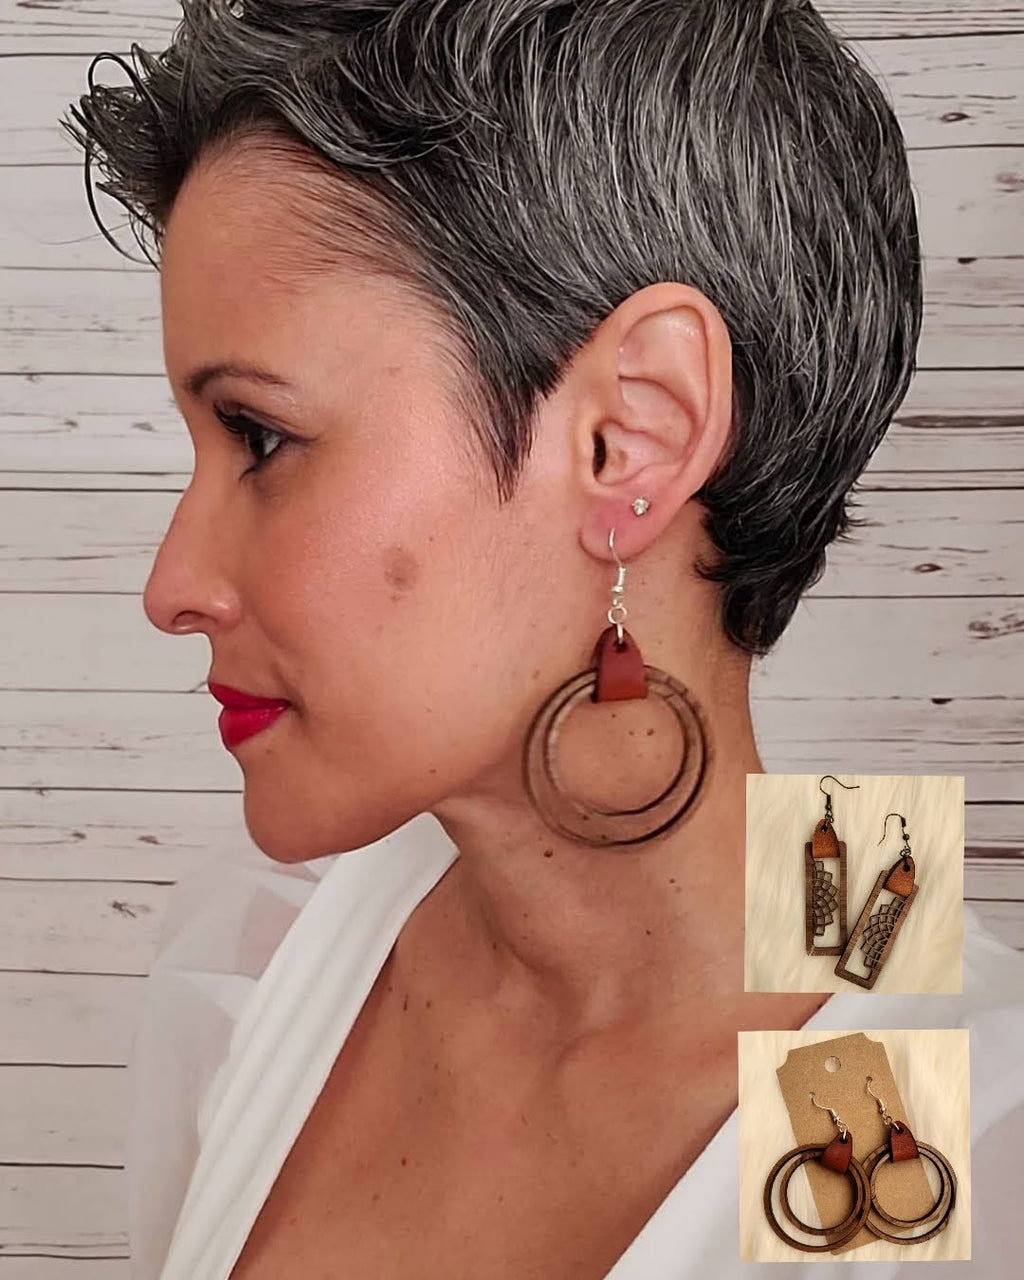 Wood You Love Me Earrings Hoops & Rectangles